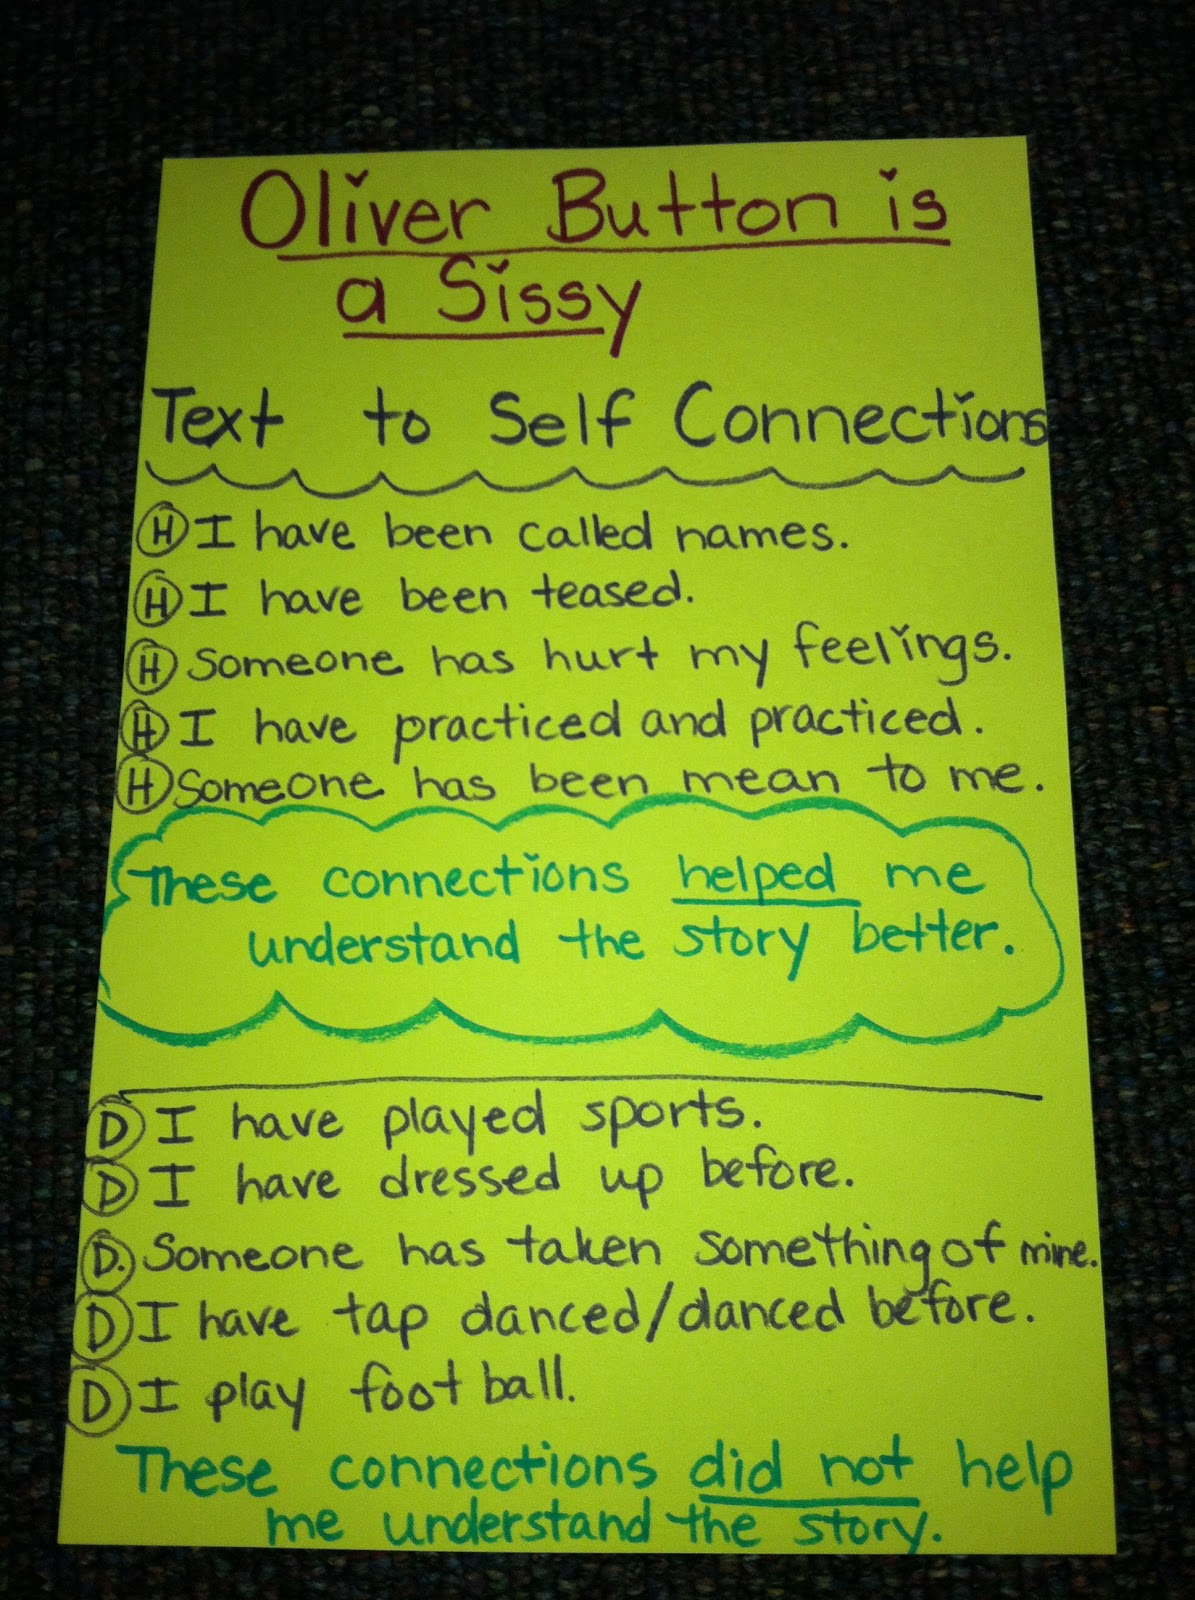 Follow First Grade Text To Self Connections With Oliver